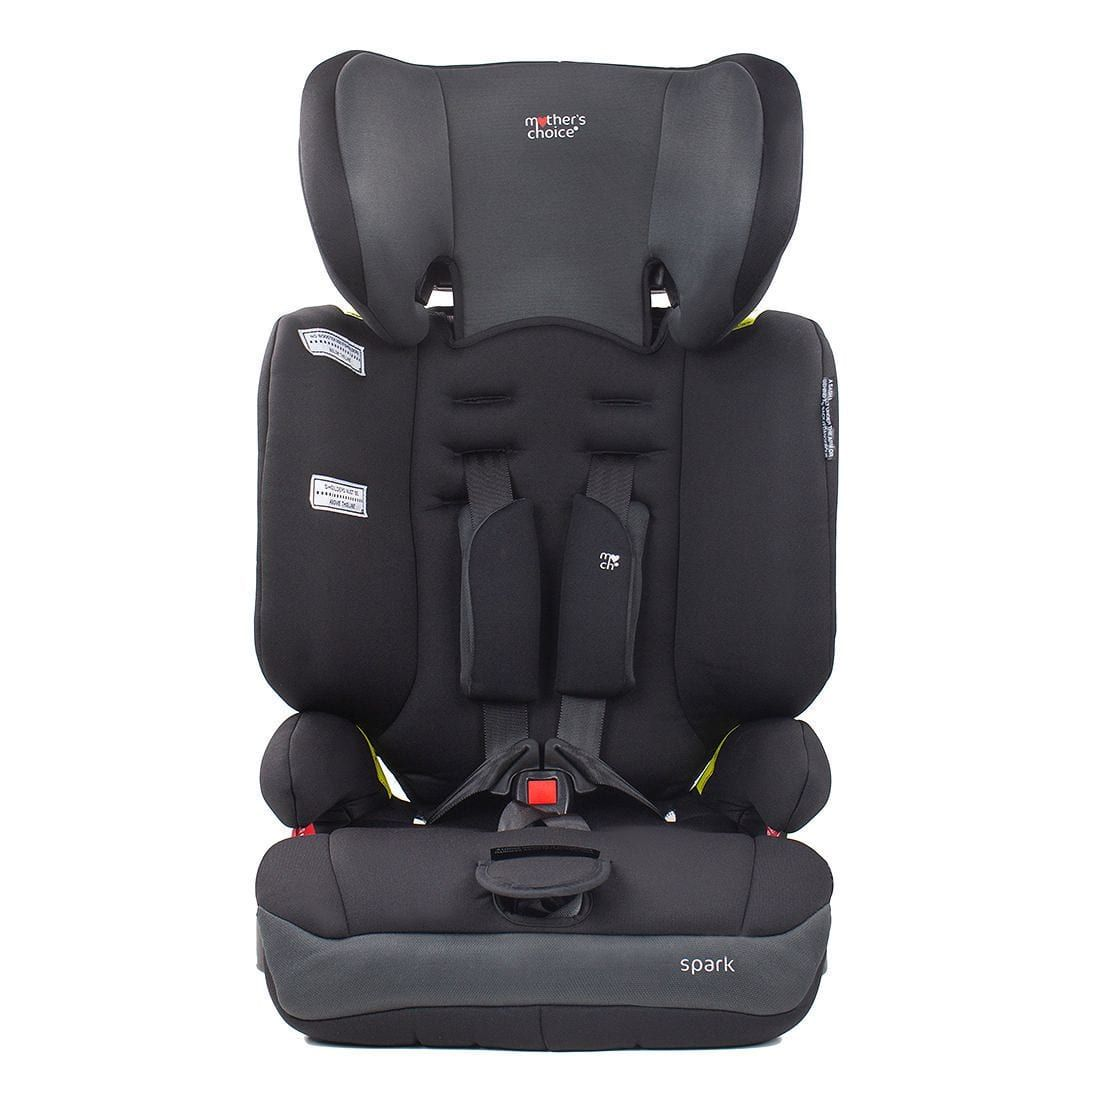 Baby Car Seats At Target Mother S Choice Spark Convertible Booster Baby Leslight